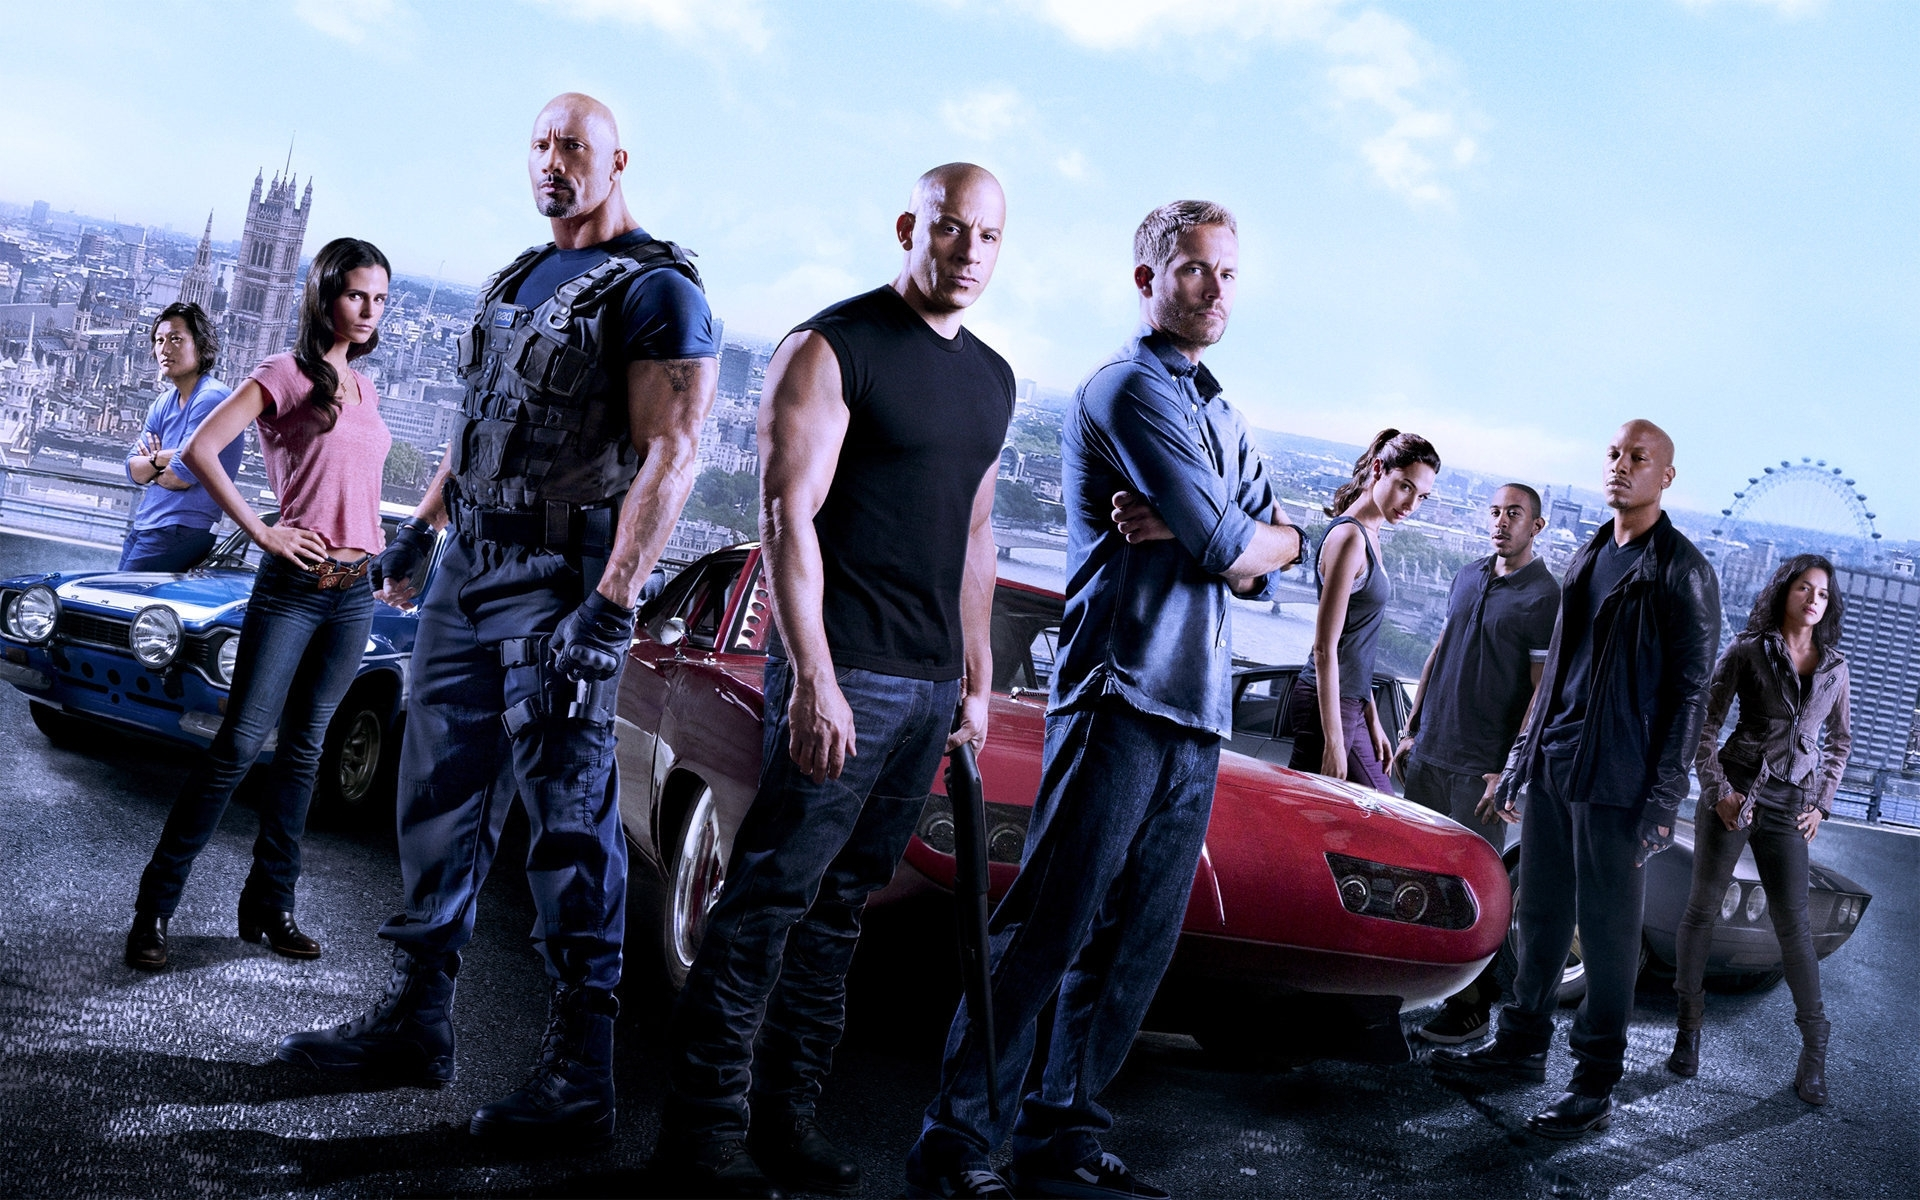 fast & furious 7 images fast and furious 7 hd wallpaper and